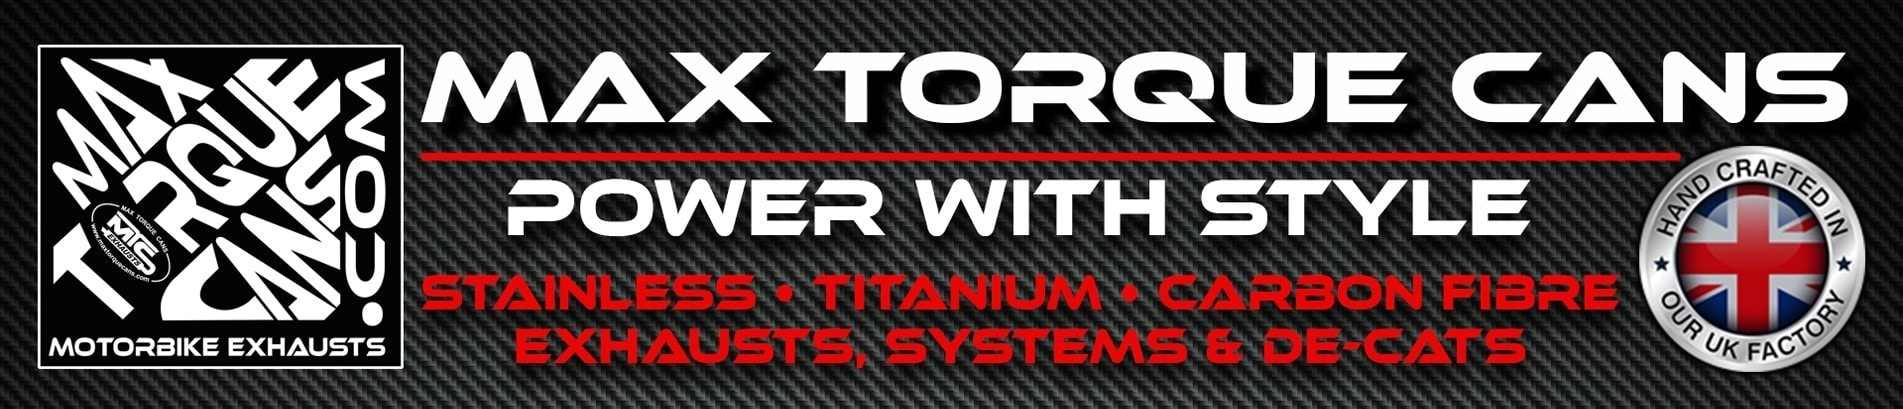 Max Torque Cans Web Banner